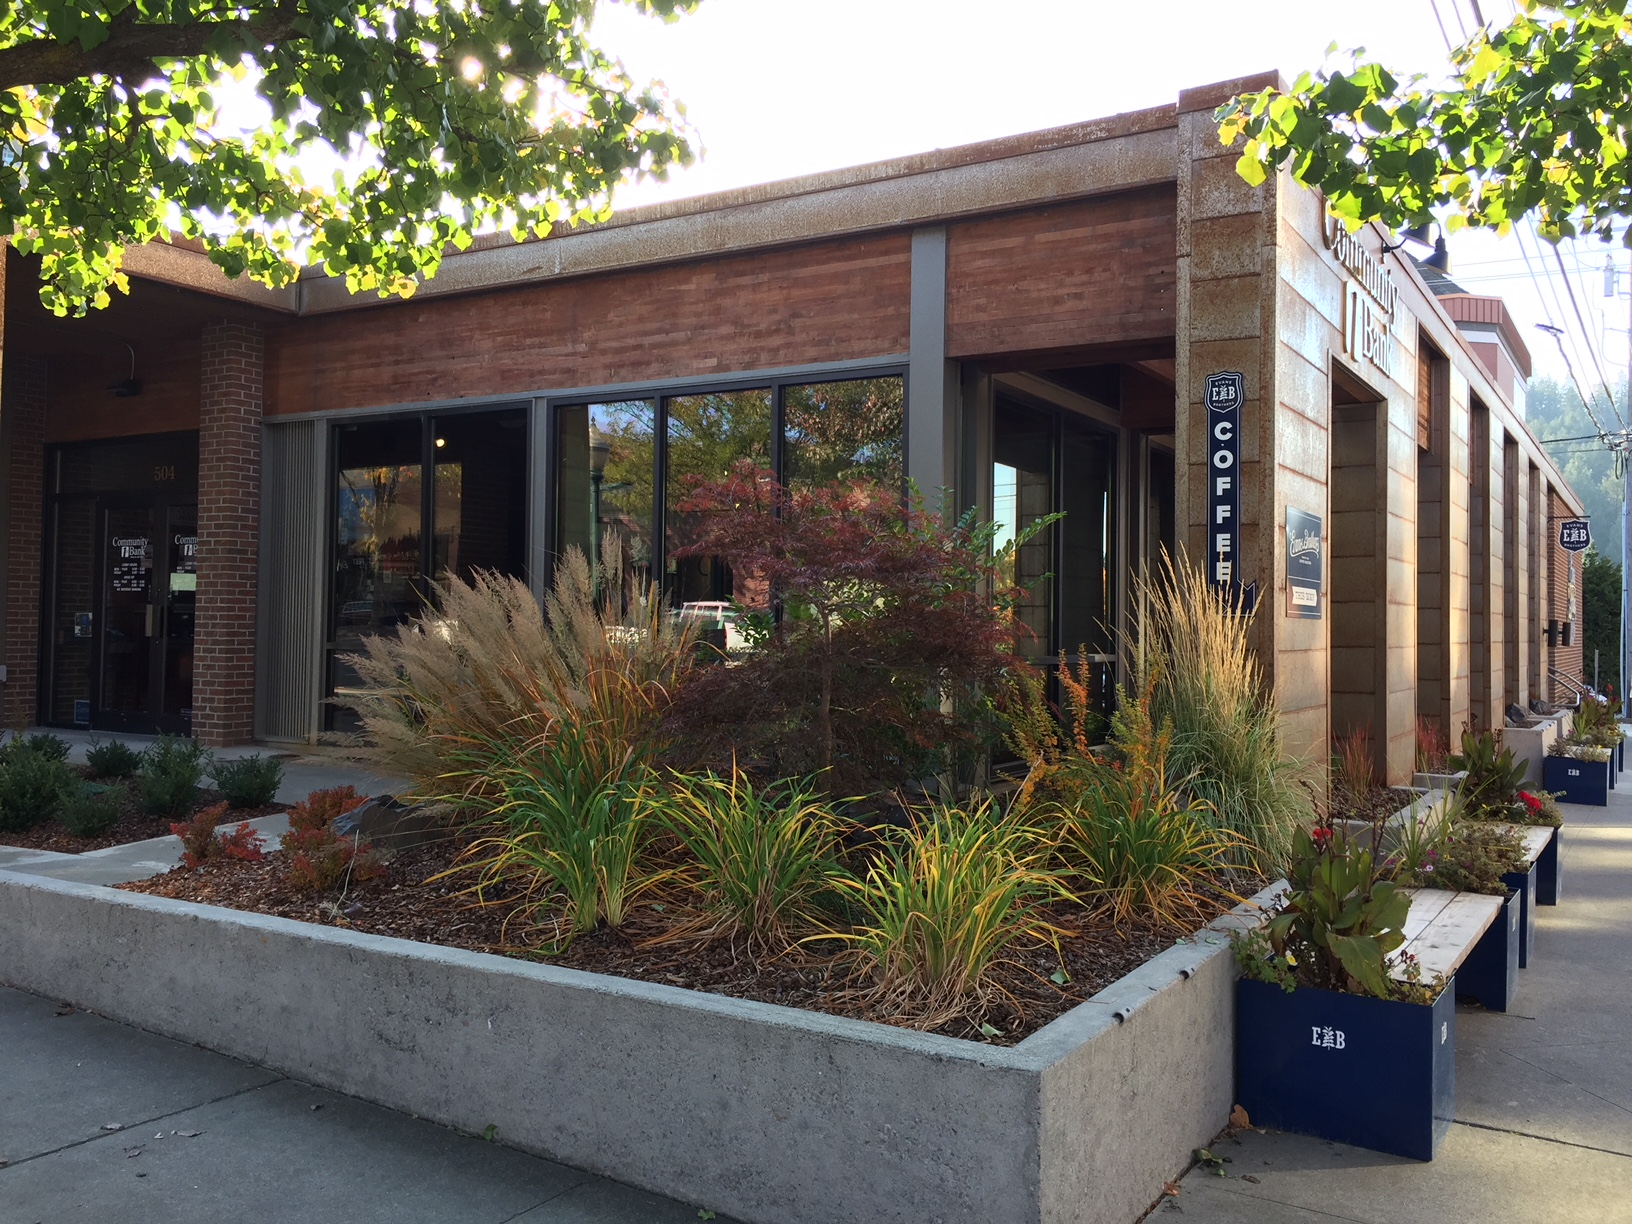 The Community 1st Bank project on Sherman Avenue in downtown Coeur d'Alene was the conversion from offices for a local TV/Radio station into a branch location for a financial institution.